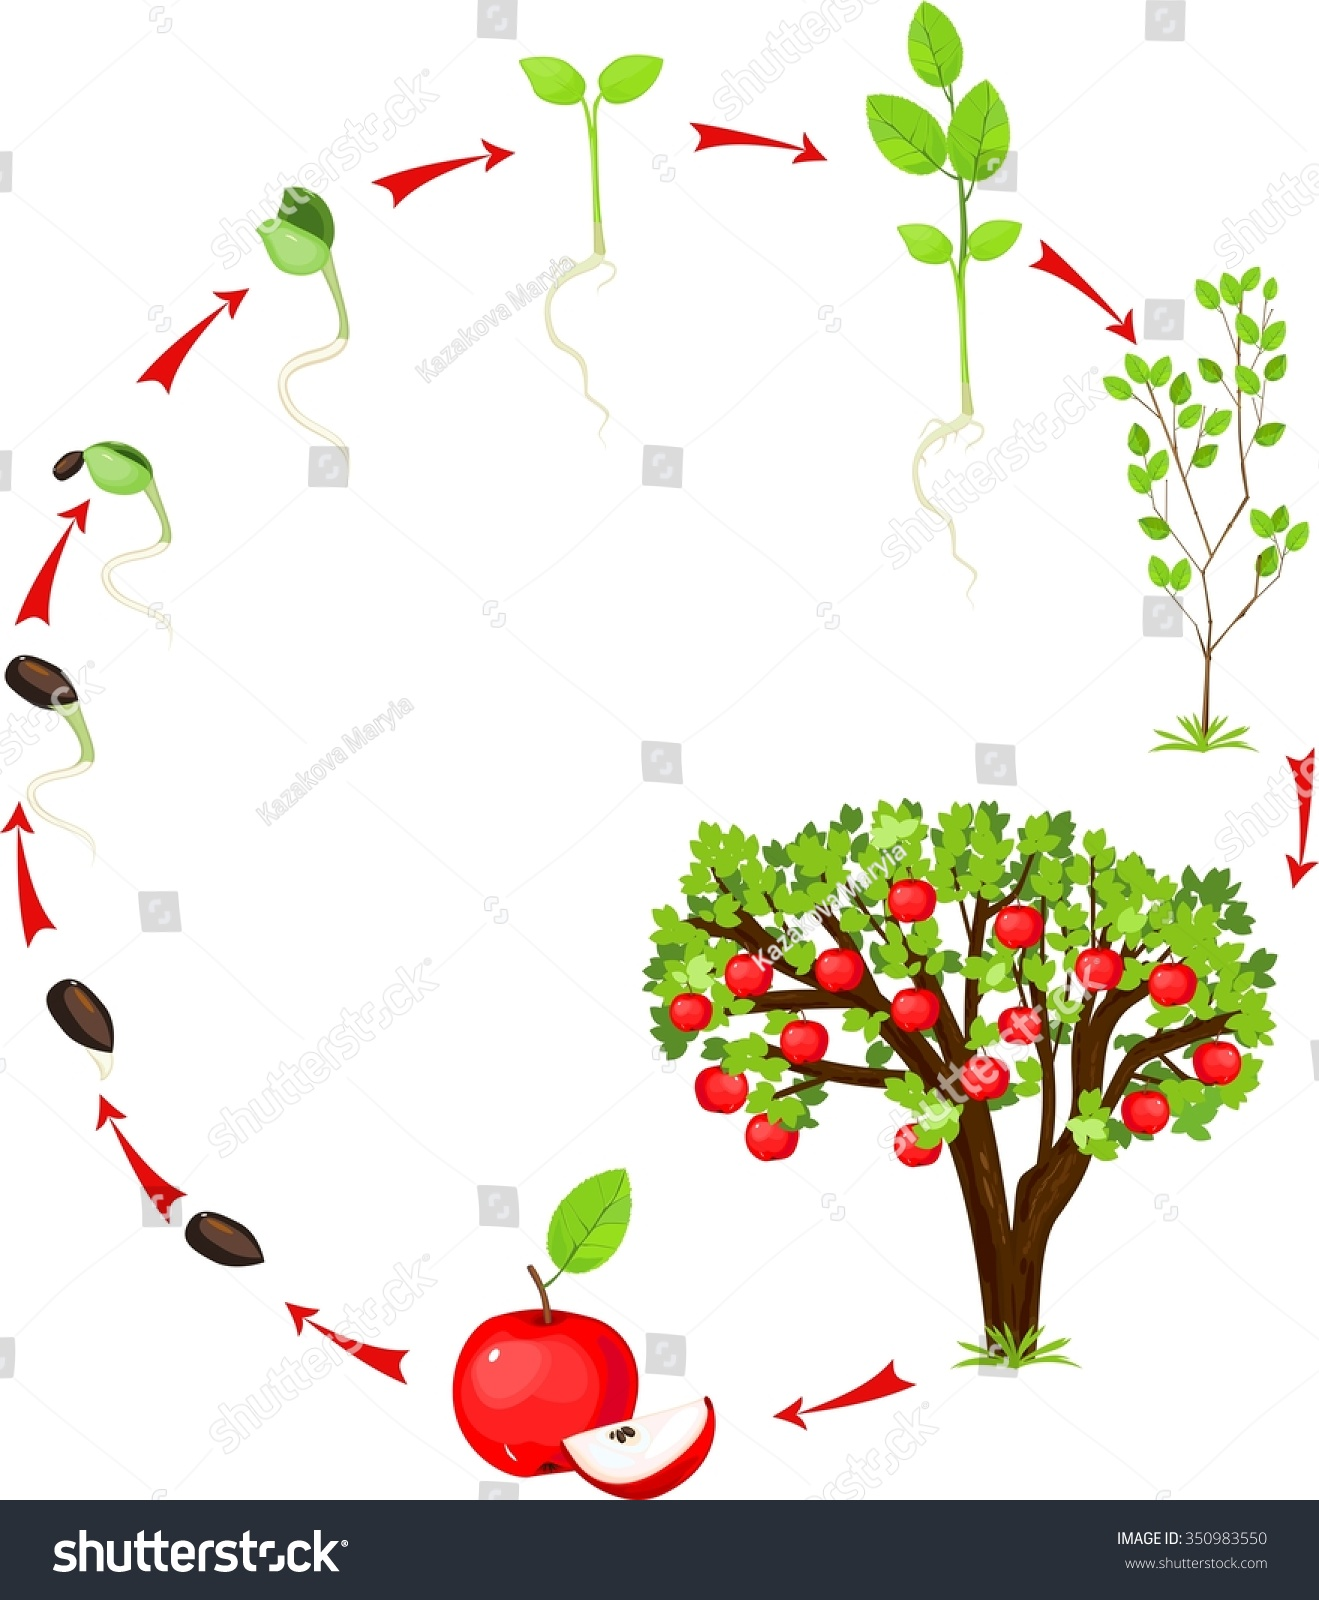 diagram of the life cycle strawberry mini quad bike wiring apple seed fruit elsavadorla